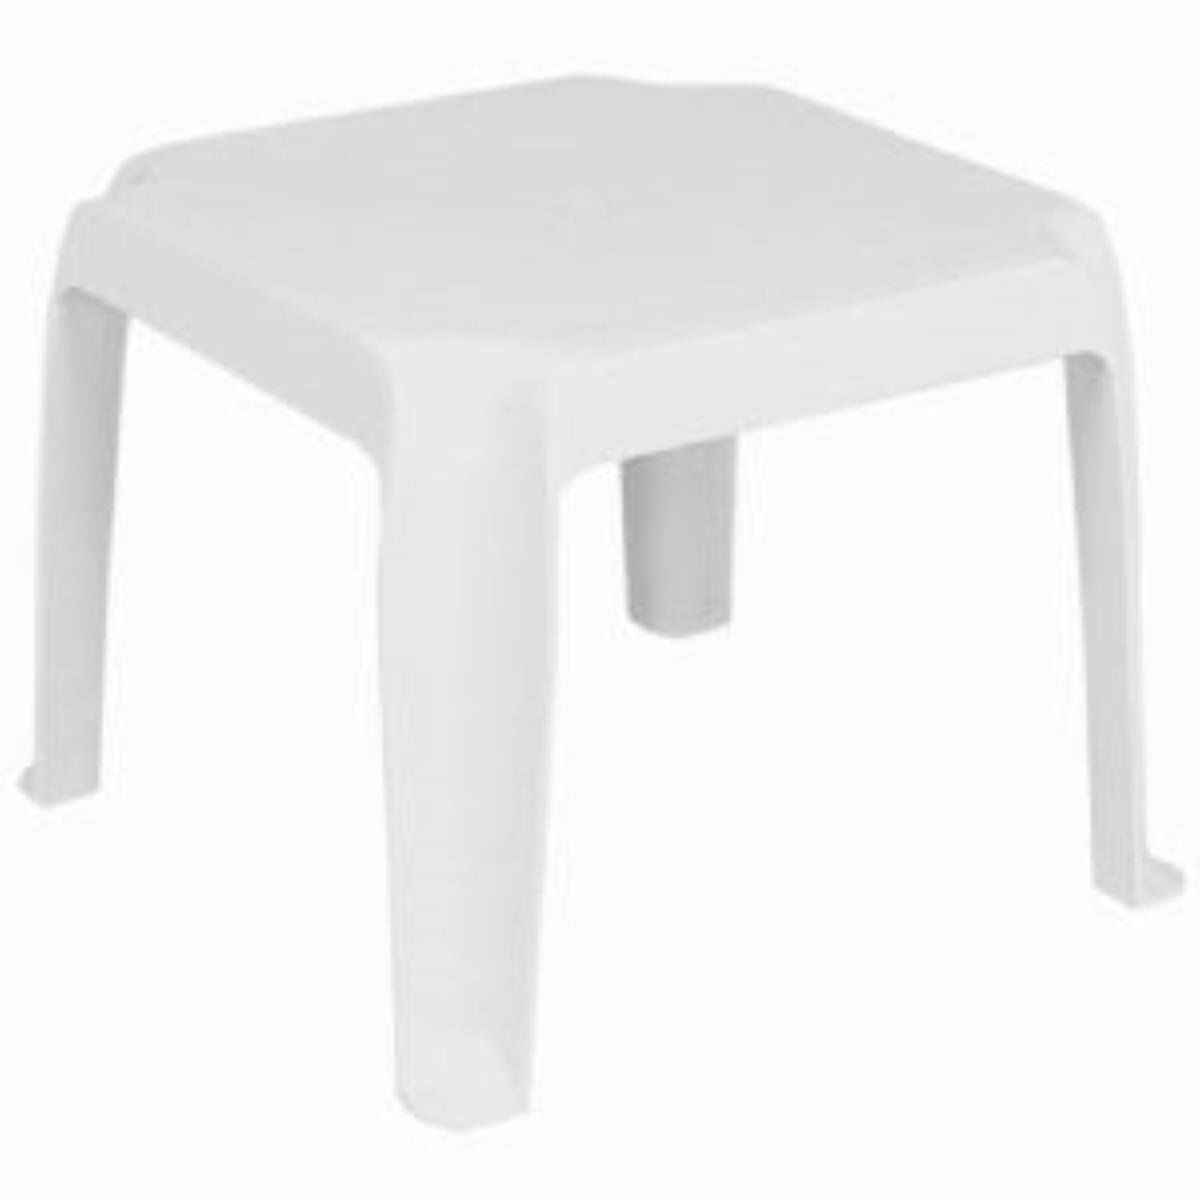 Small White Plastic Table Used Home Office Furniture Check More At Http